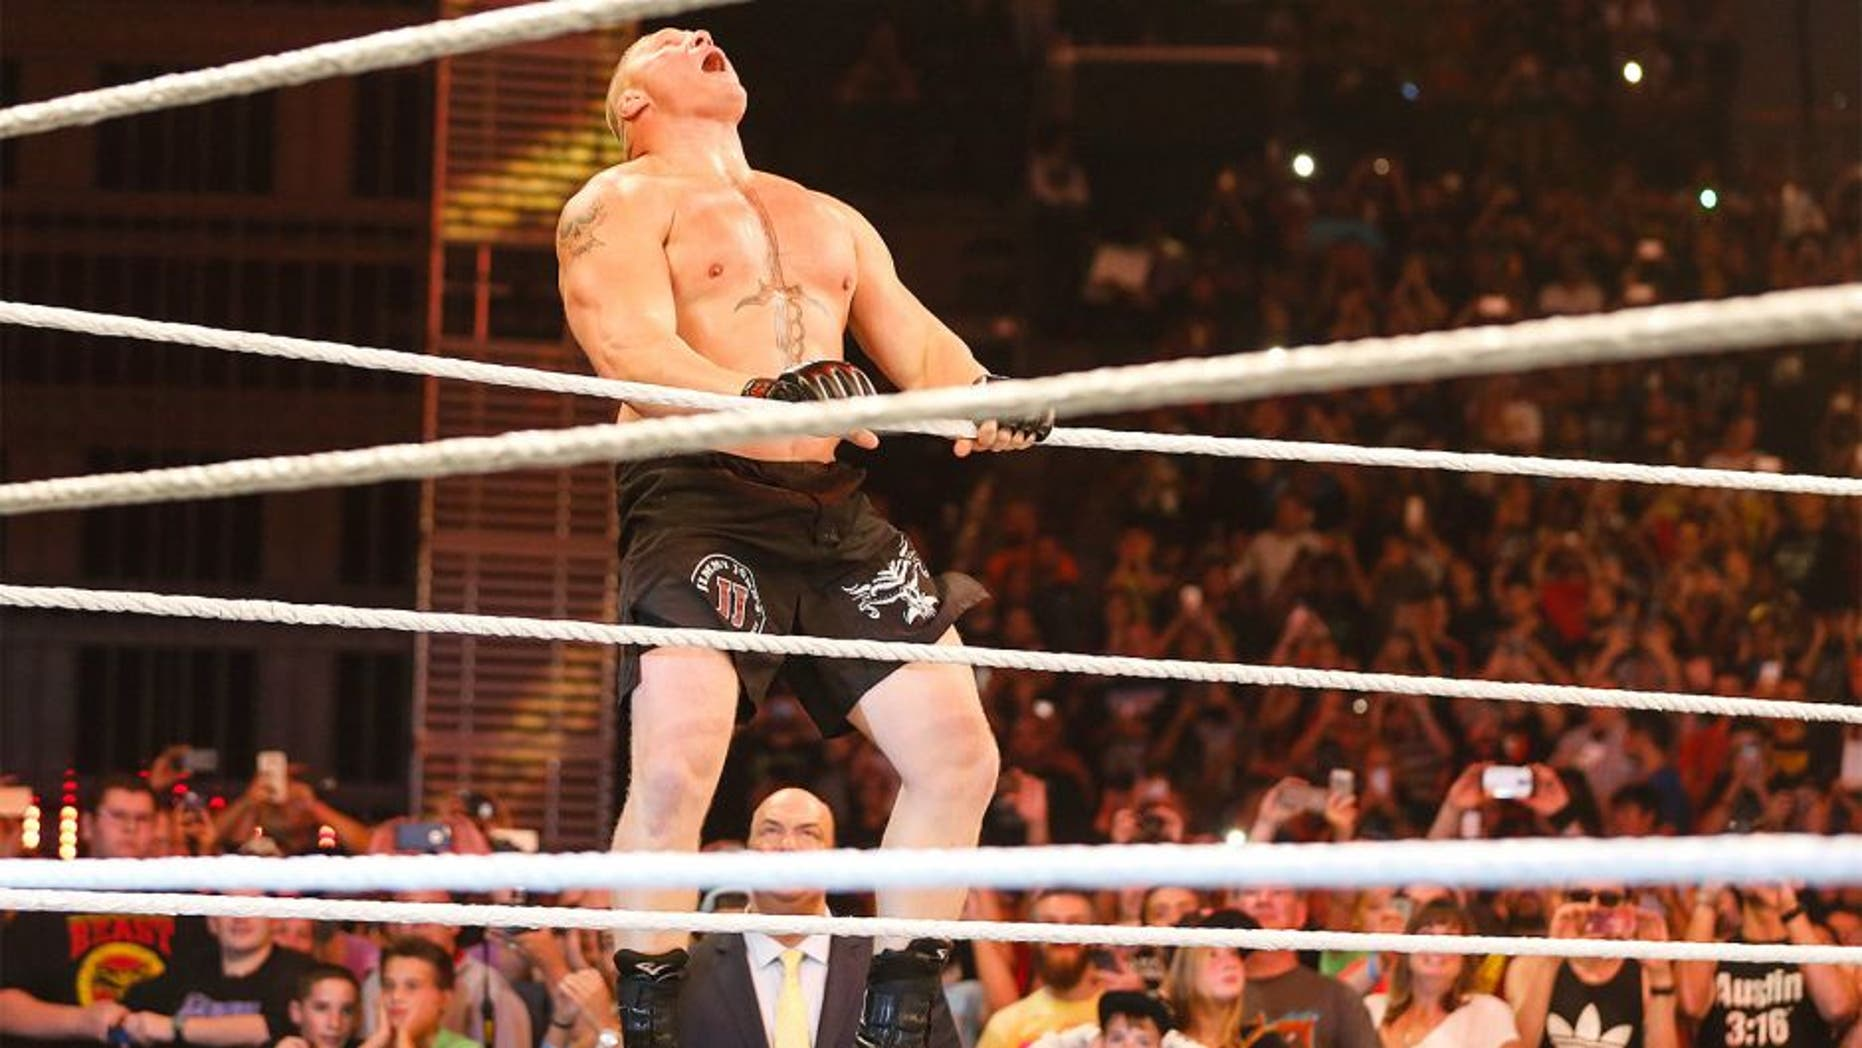 NEW YORK, NY - AUGUST 23: Brock Lesnar enters the ring at the WWE SummerSlam 2015 at Barclays Center of Brooklyn on August 23, 2015 in New York City. (Photo by JP Yim/Getty Images)